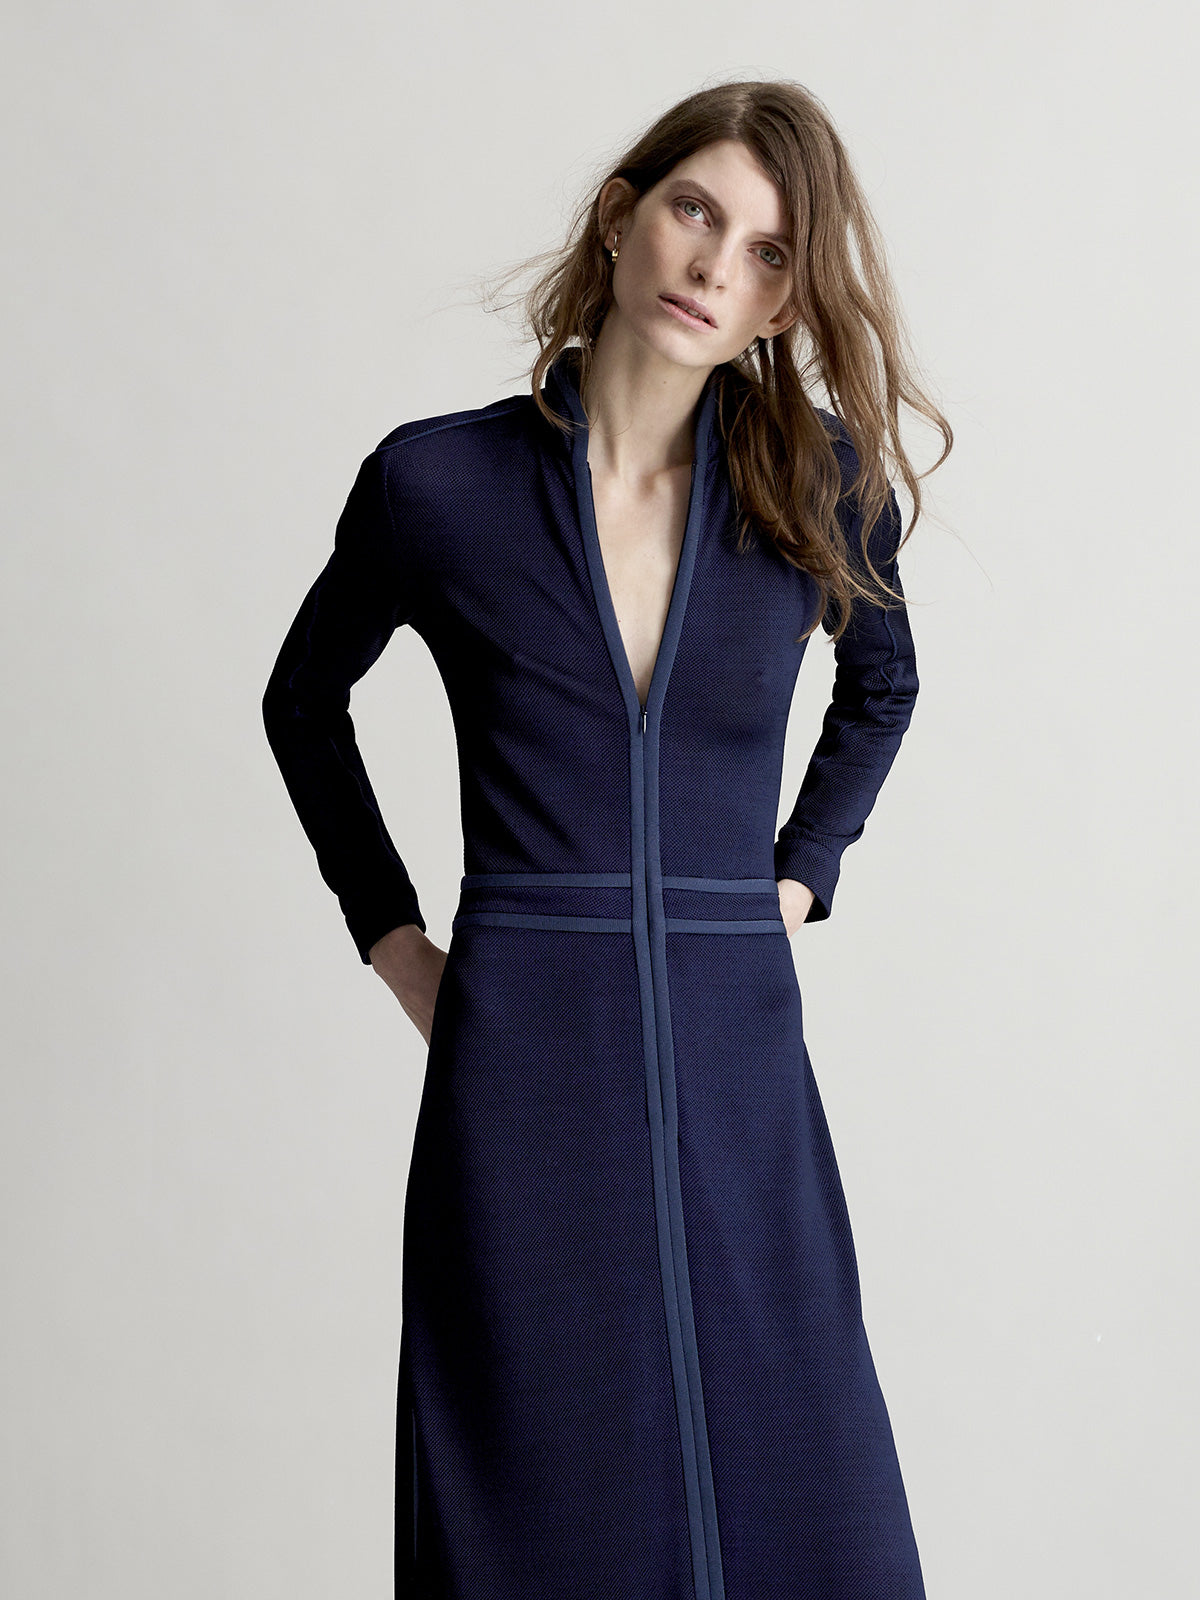 Ana Maxi Dress, Navy - Sykes London